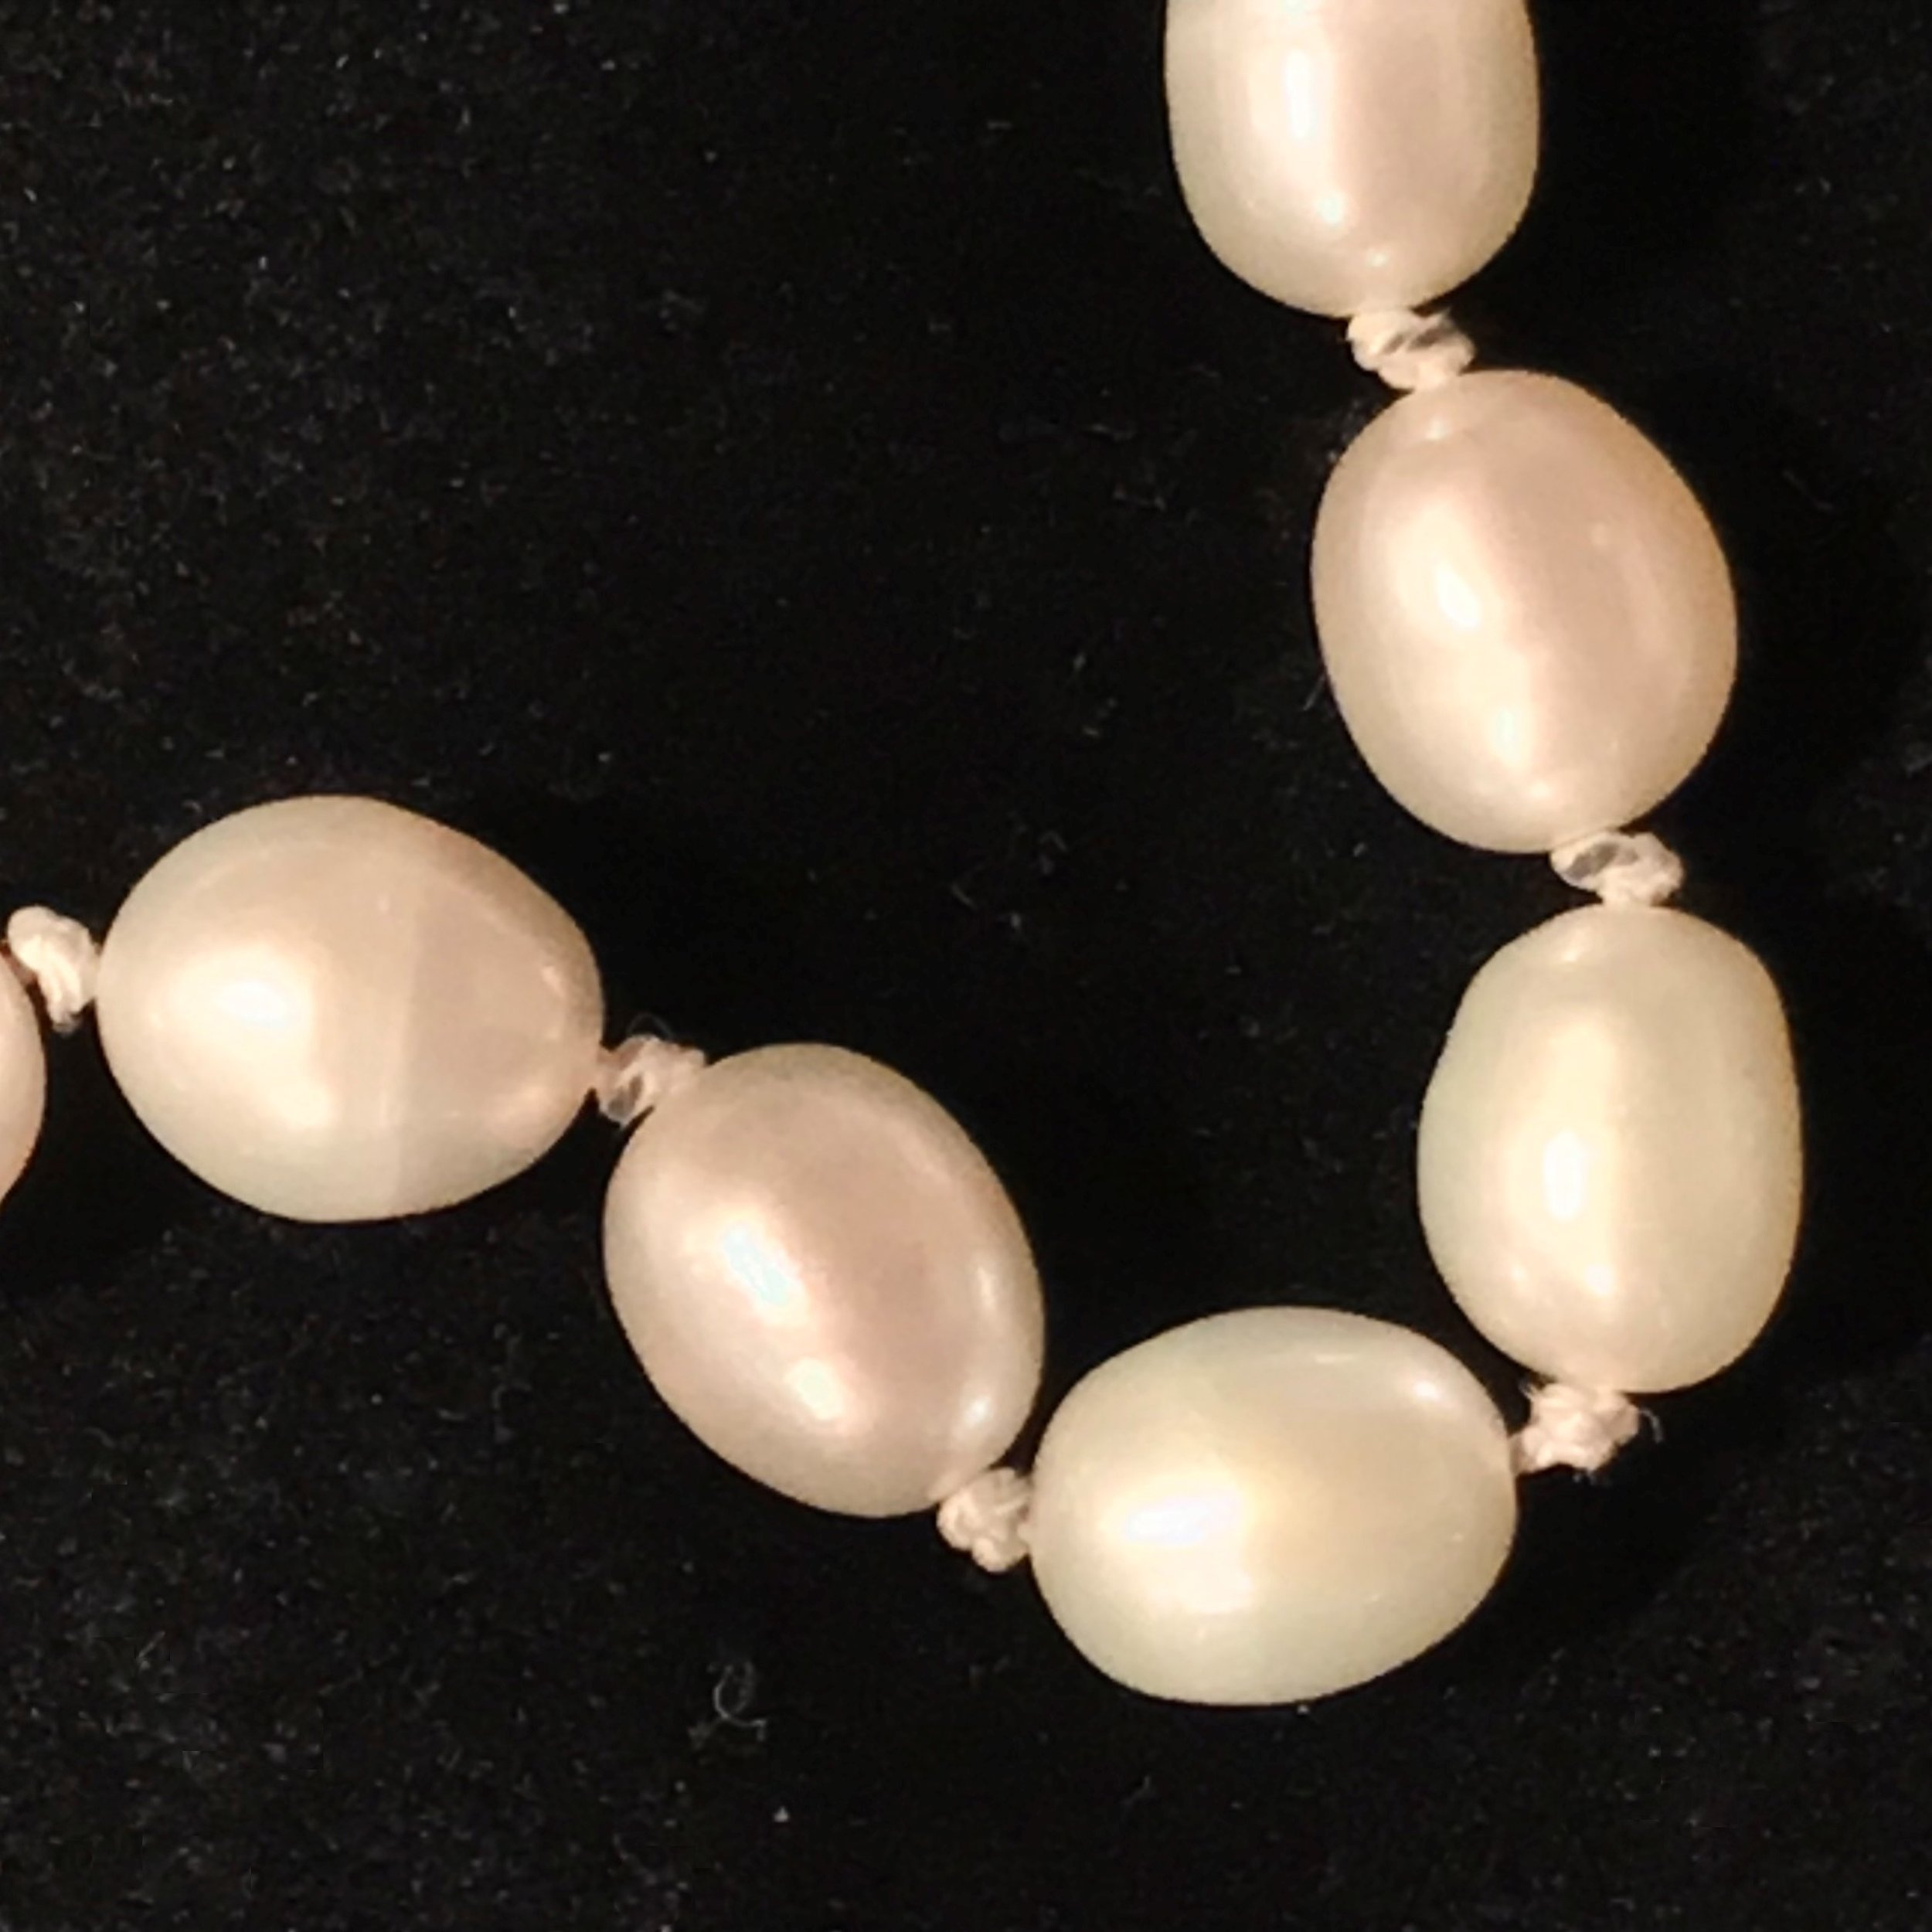 knotted pearls.JPG